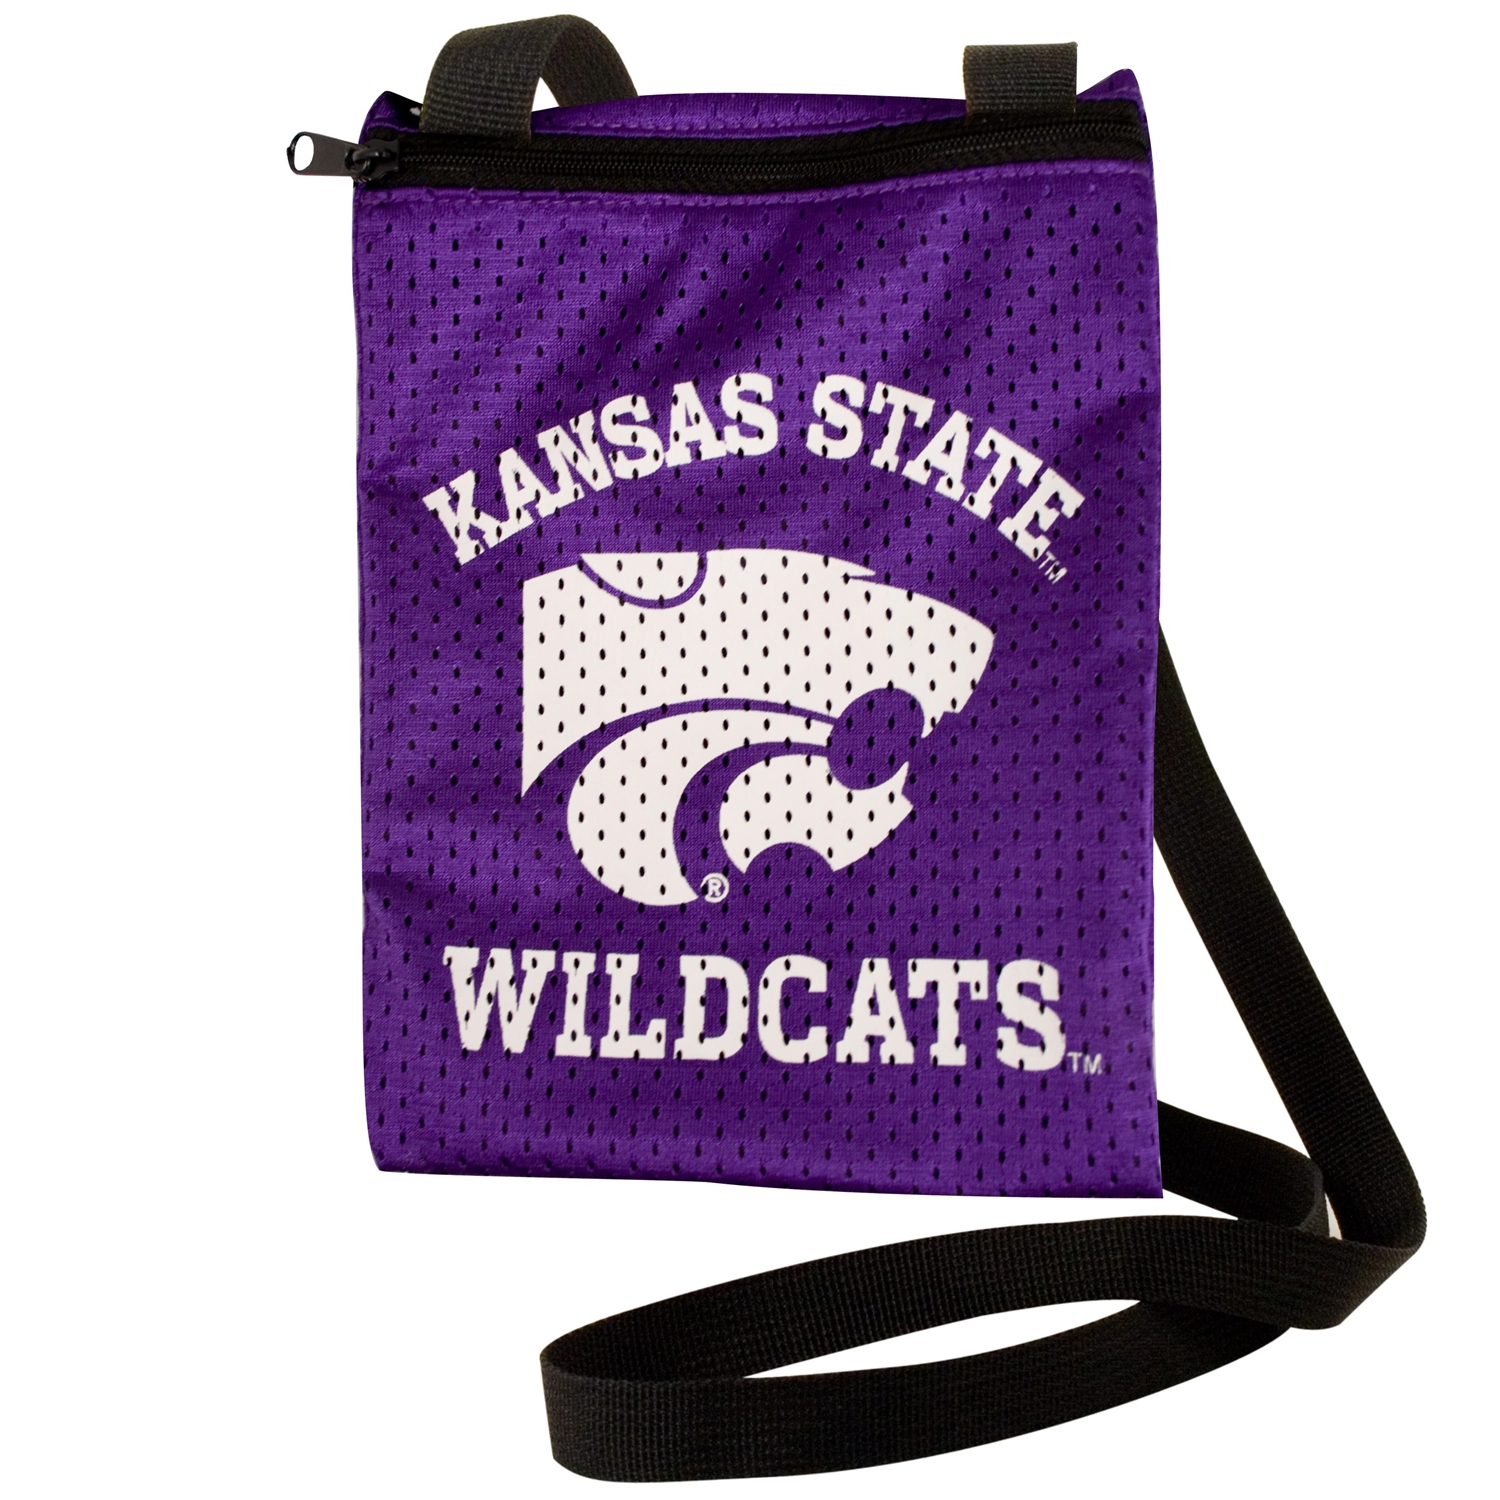 Kansas State Wildcats Game Day Pouch - 100103-kssu-1 - Handbags; Wallets Cases Ncaa University 100103-KSSU-1